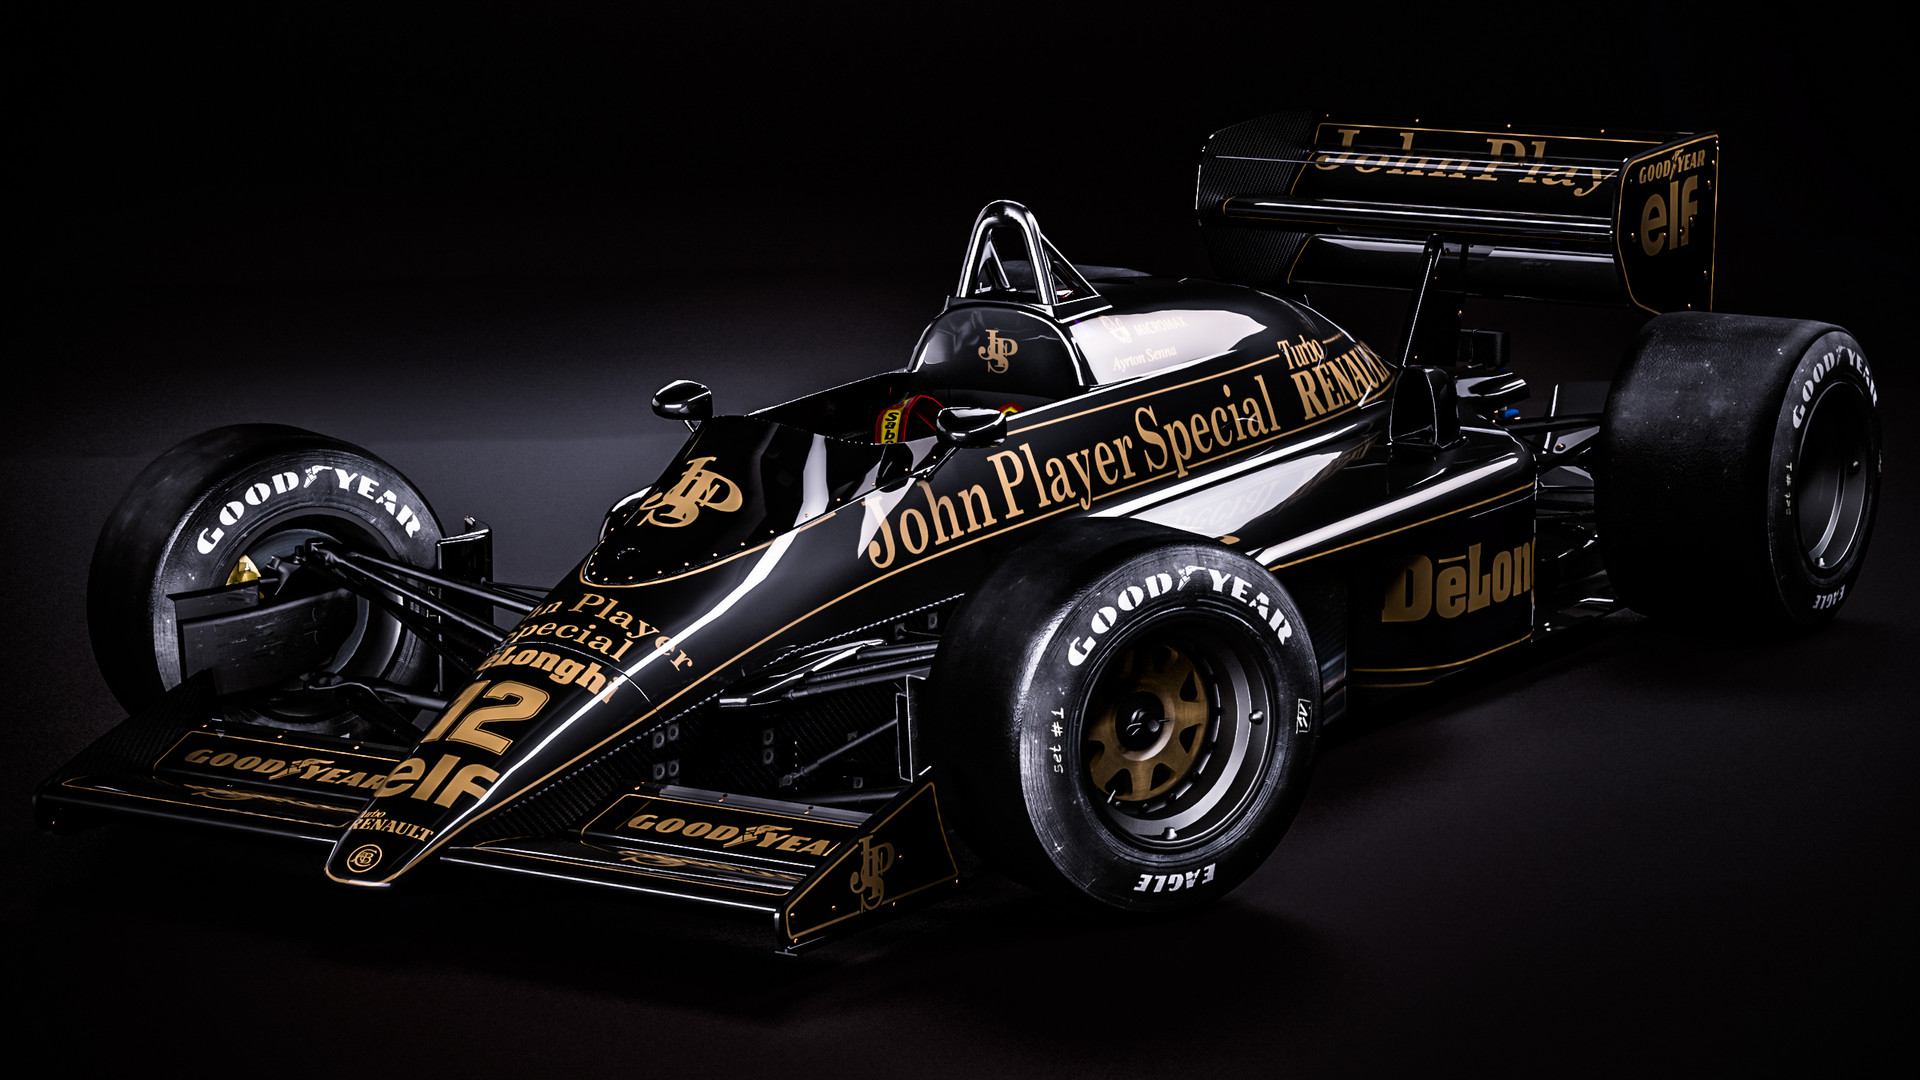 Mercedes Of Warwick >> Zoki Nanco - Nancorocks - - Lotus 98T - Ayrton Senna